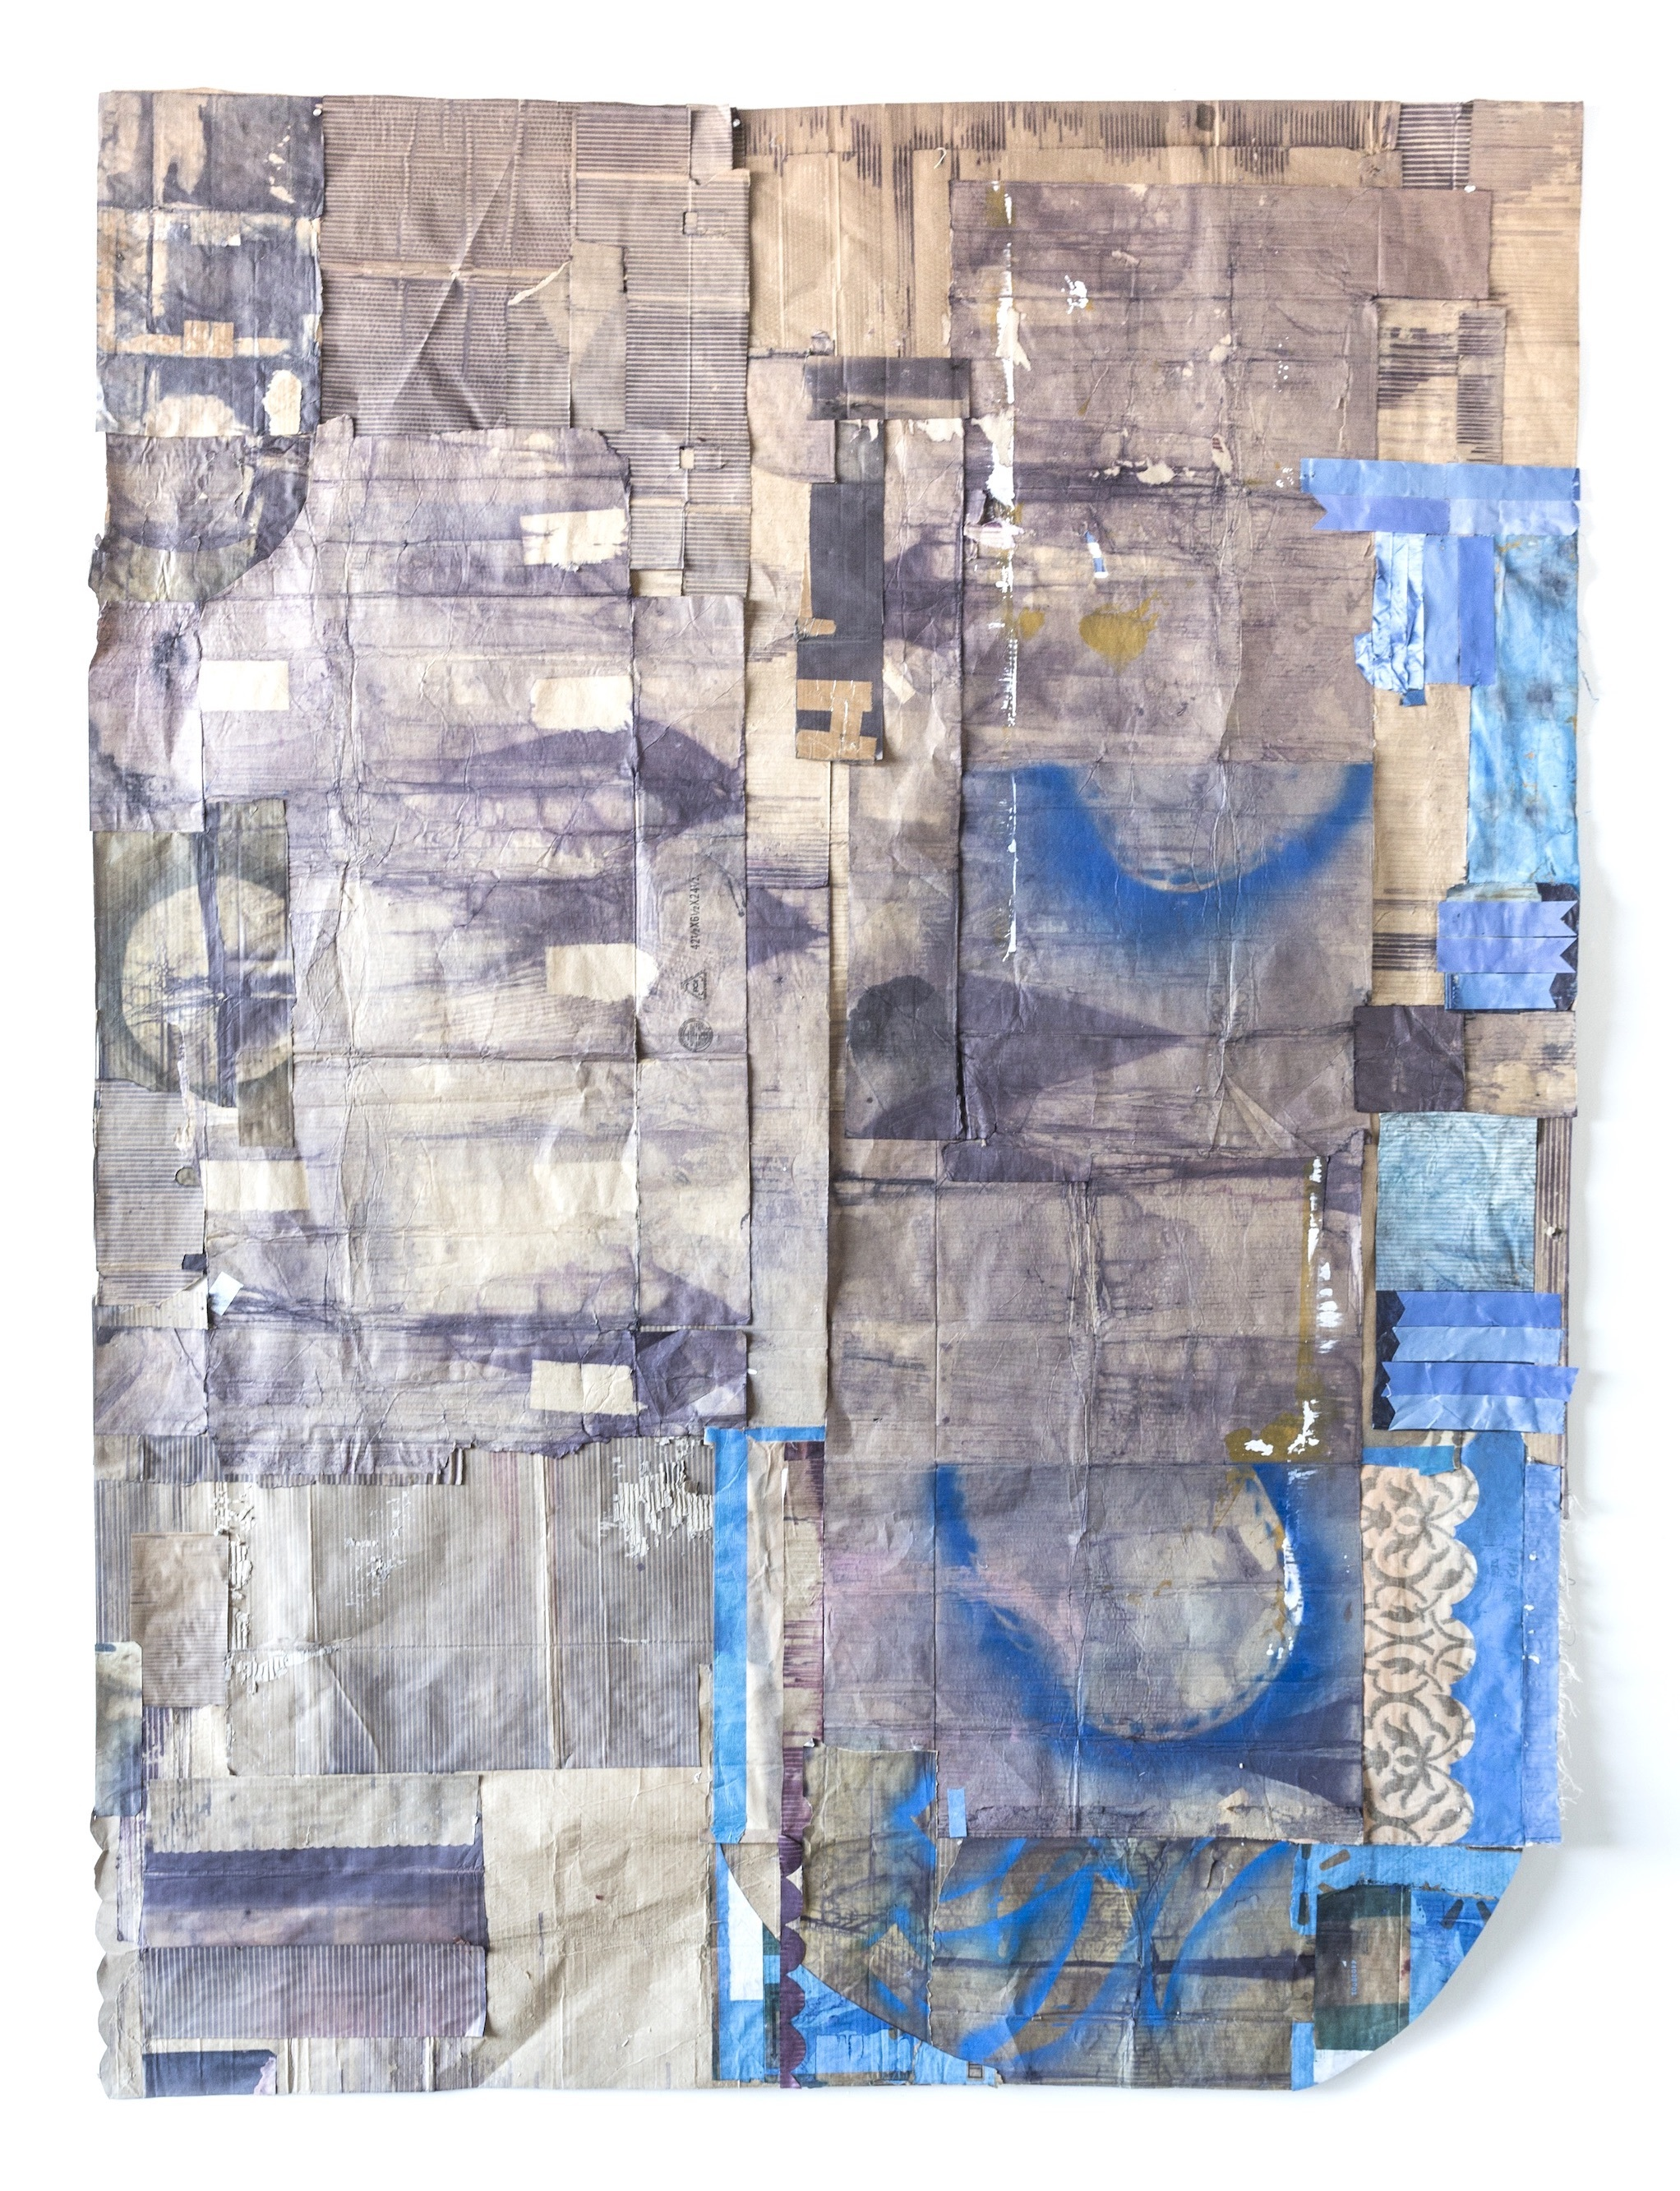 """Jodi Hays, Deposition, 115"""" x 86"""" (2021), oil, dye, fabric, acrylic, spray enamel, paper (images courtesy of the artist and Sam Angel Photography)"""